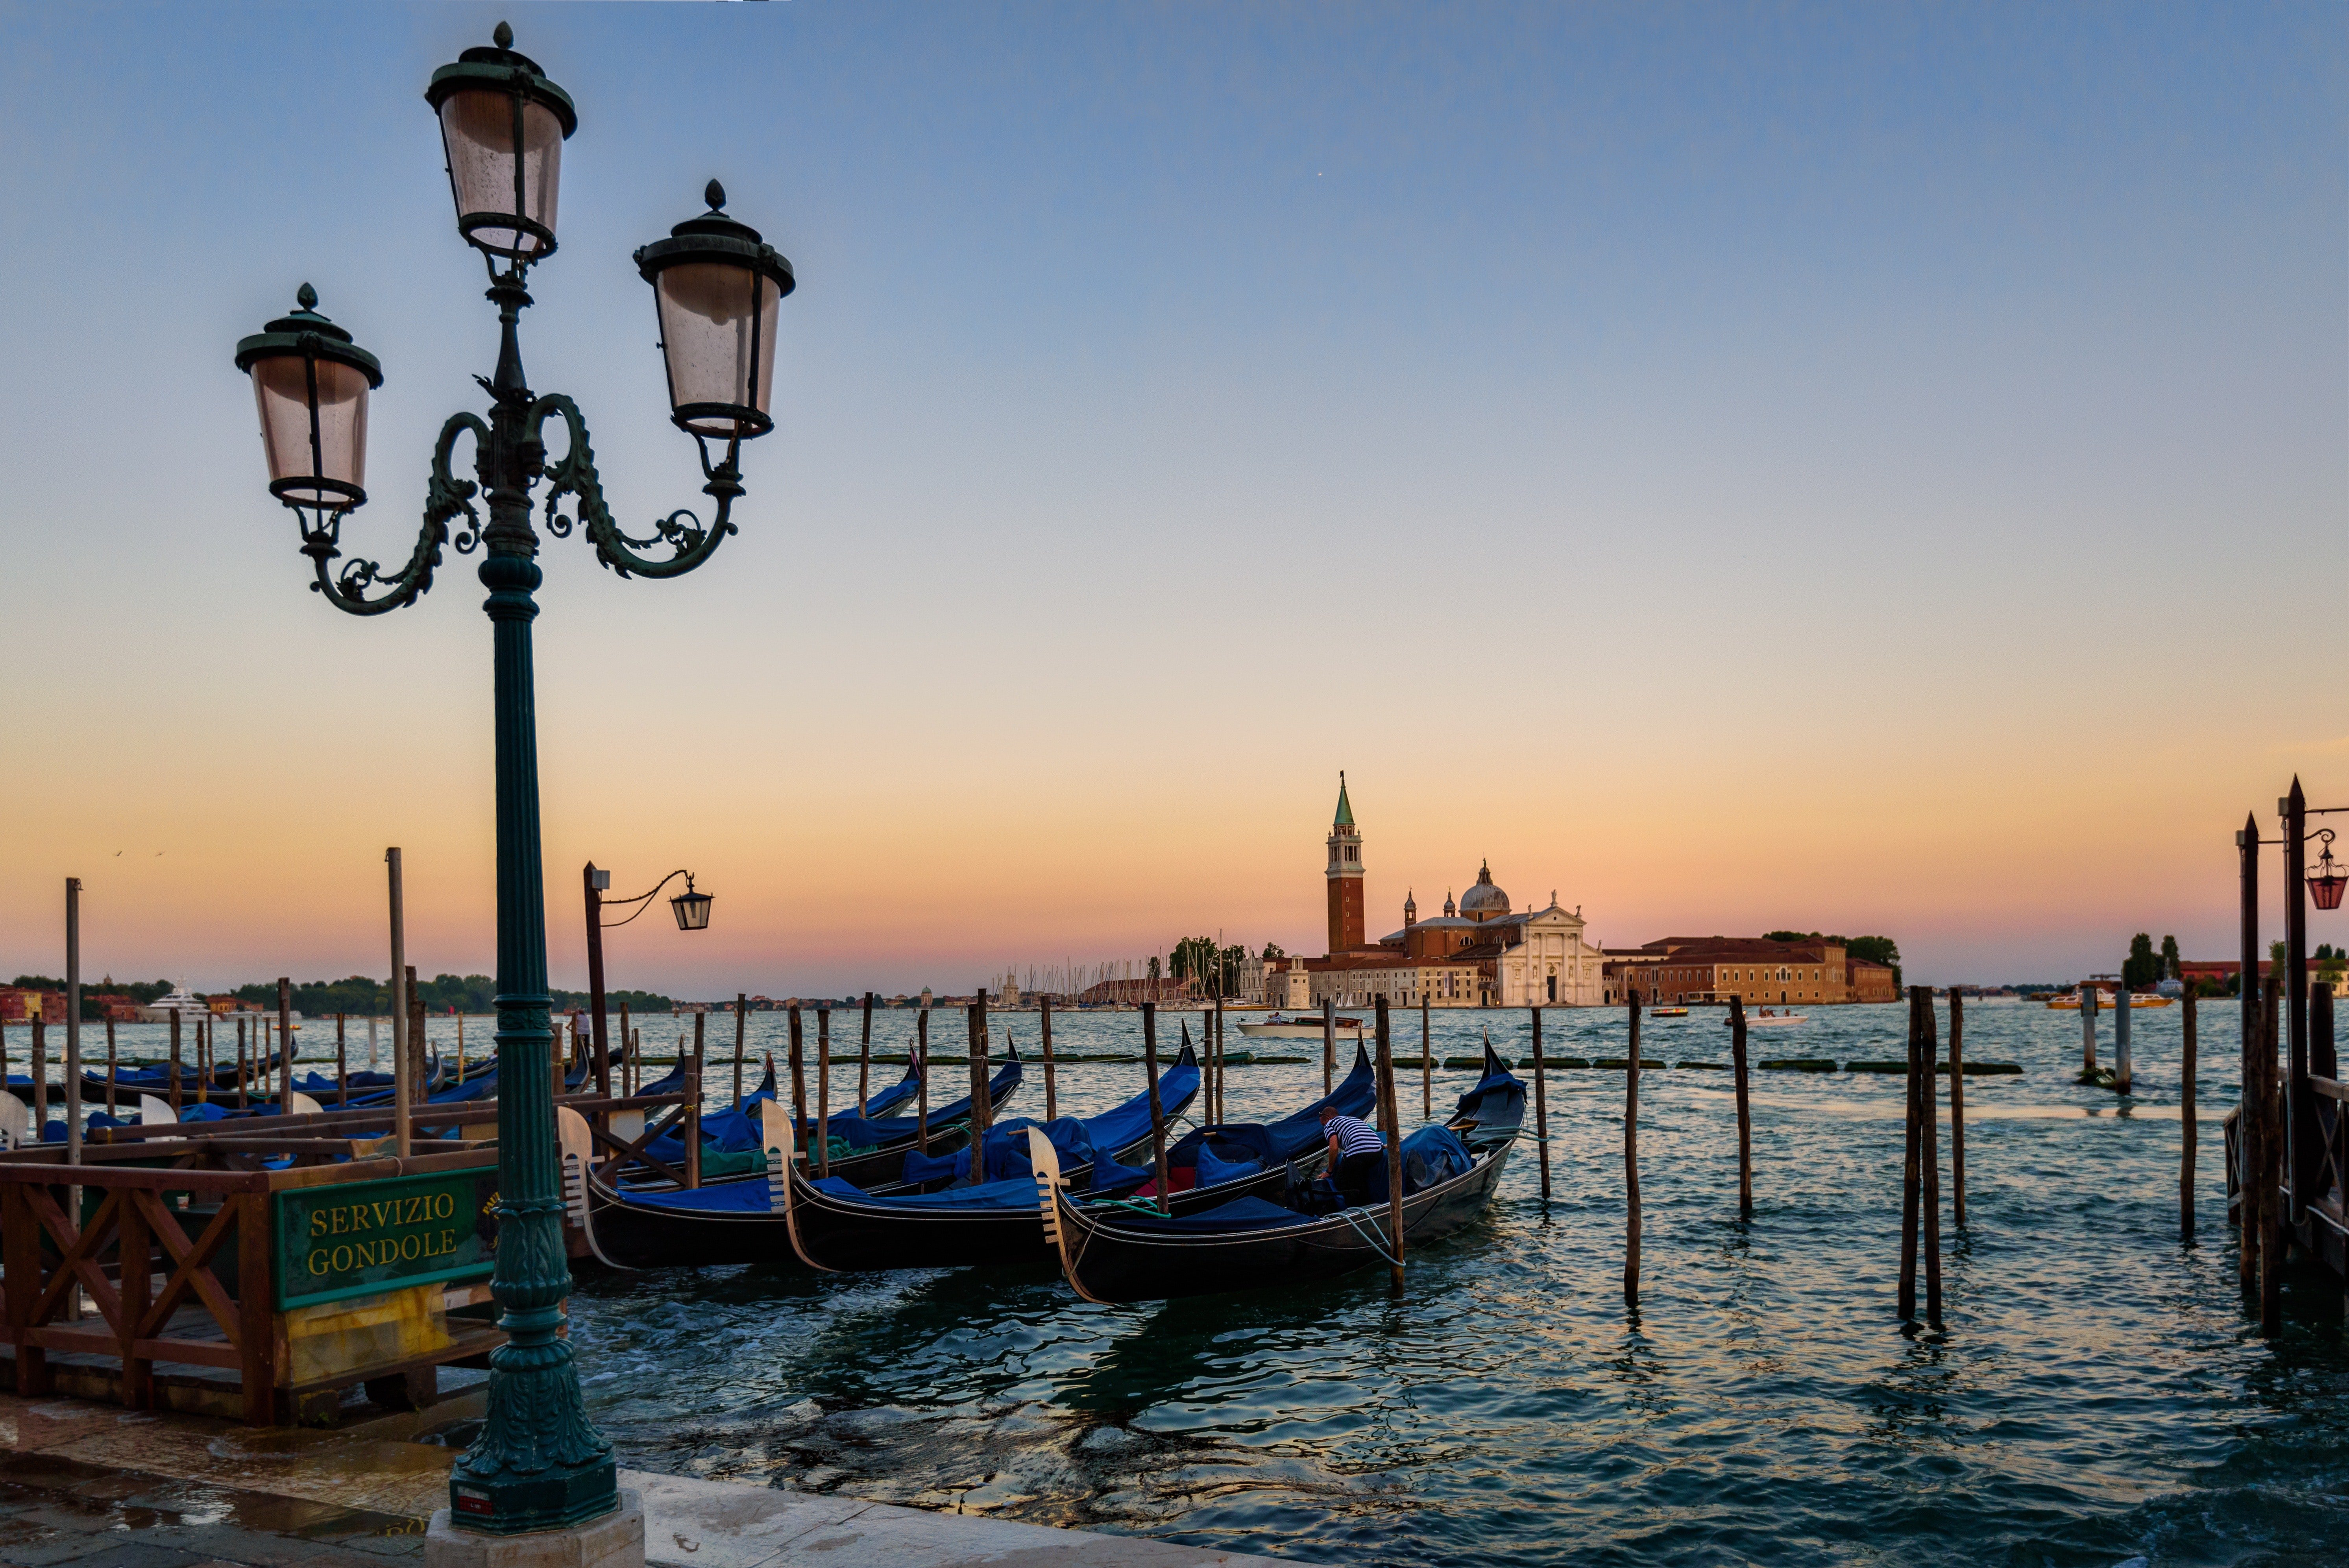 Green Metal Post in Front of the Body of Ocean With Boats during Twilight, Boats, Canal, Dawn, Dusk, HQ Photo